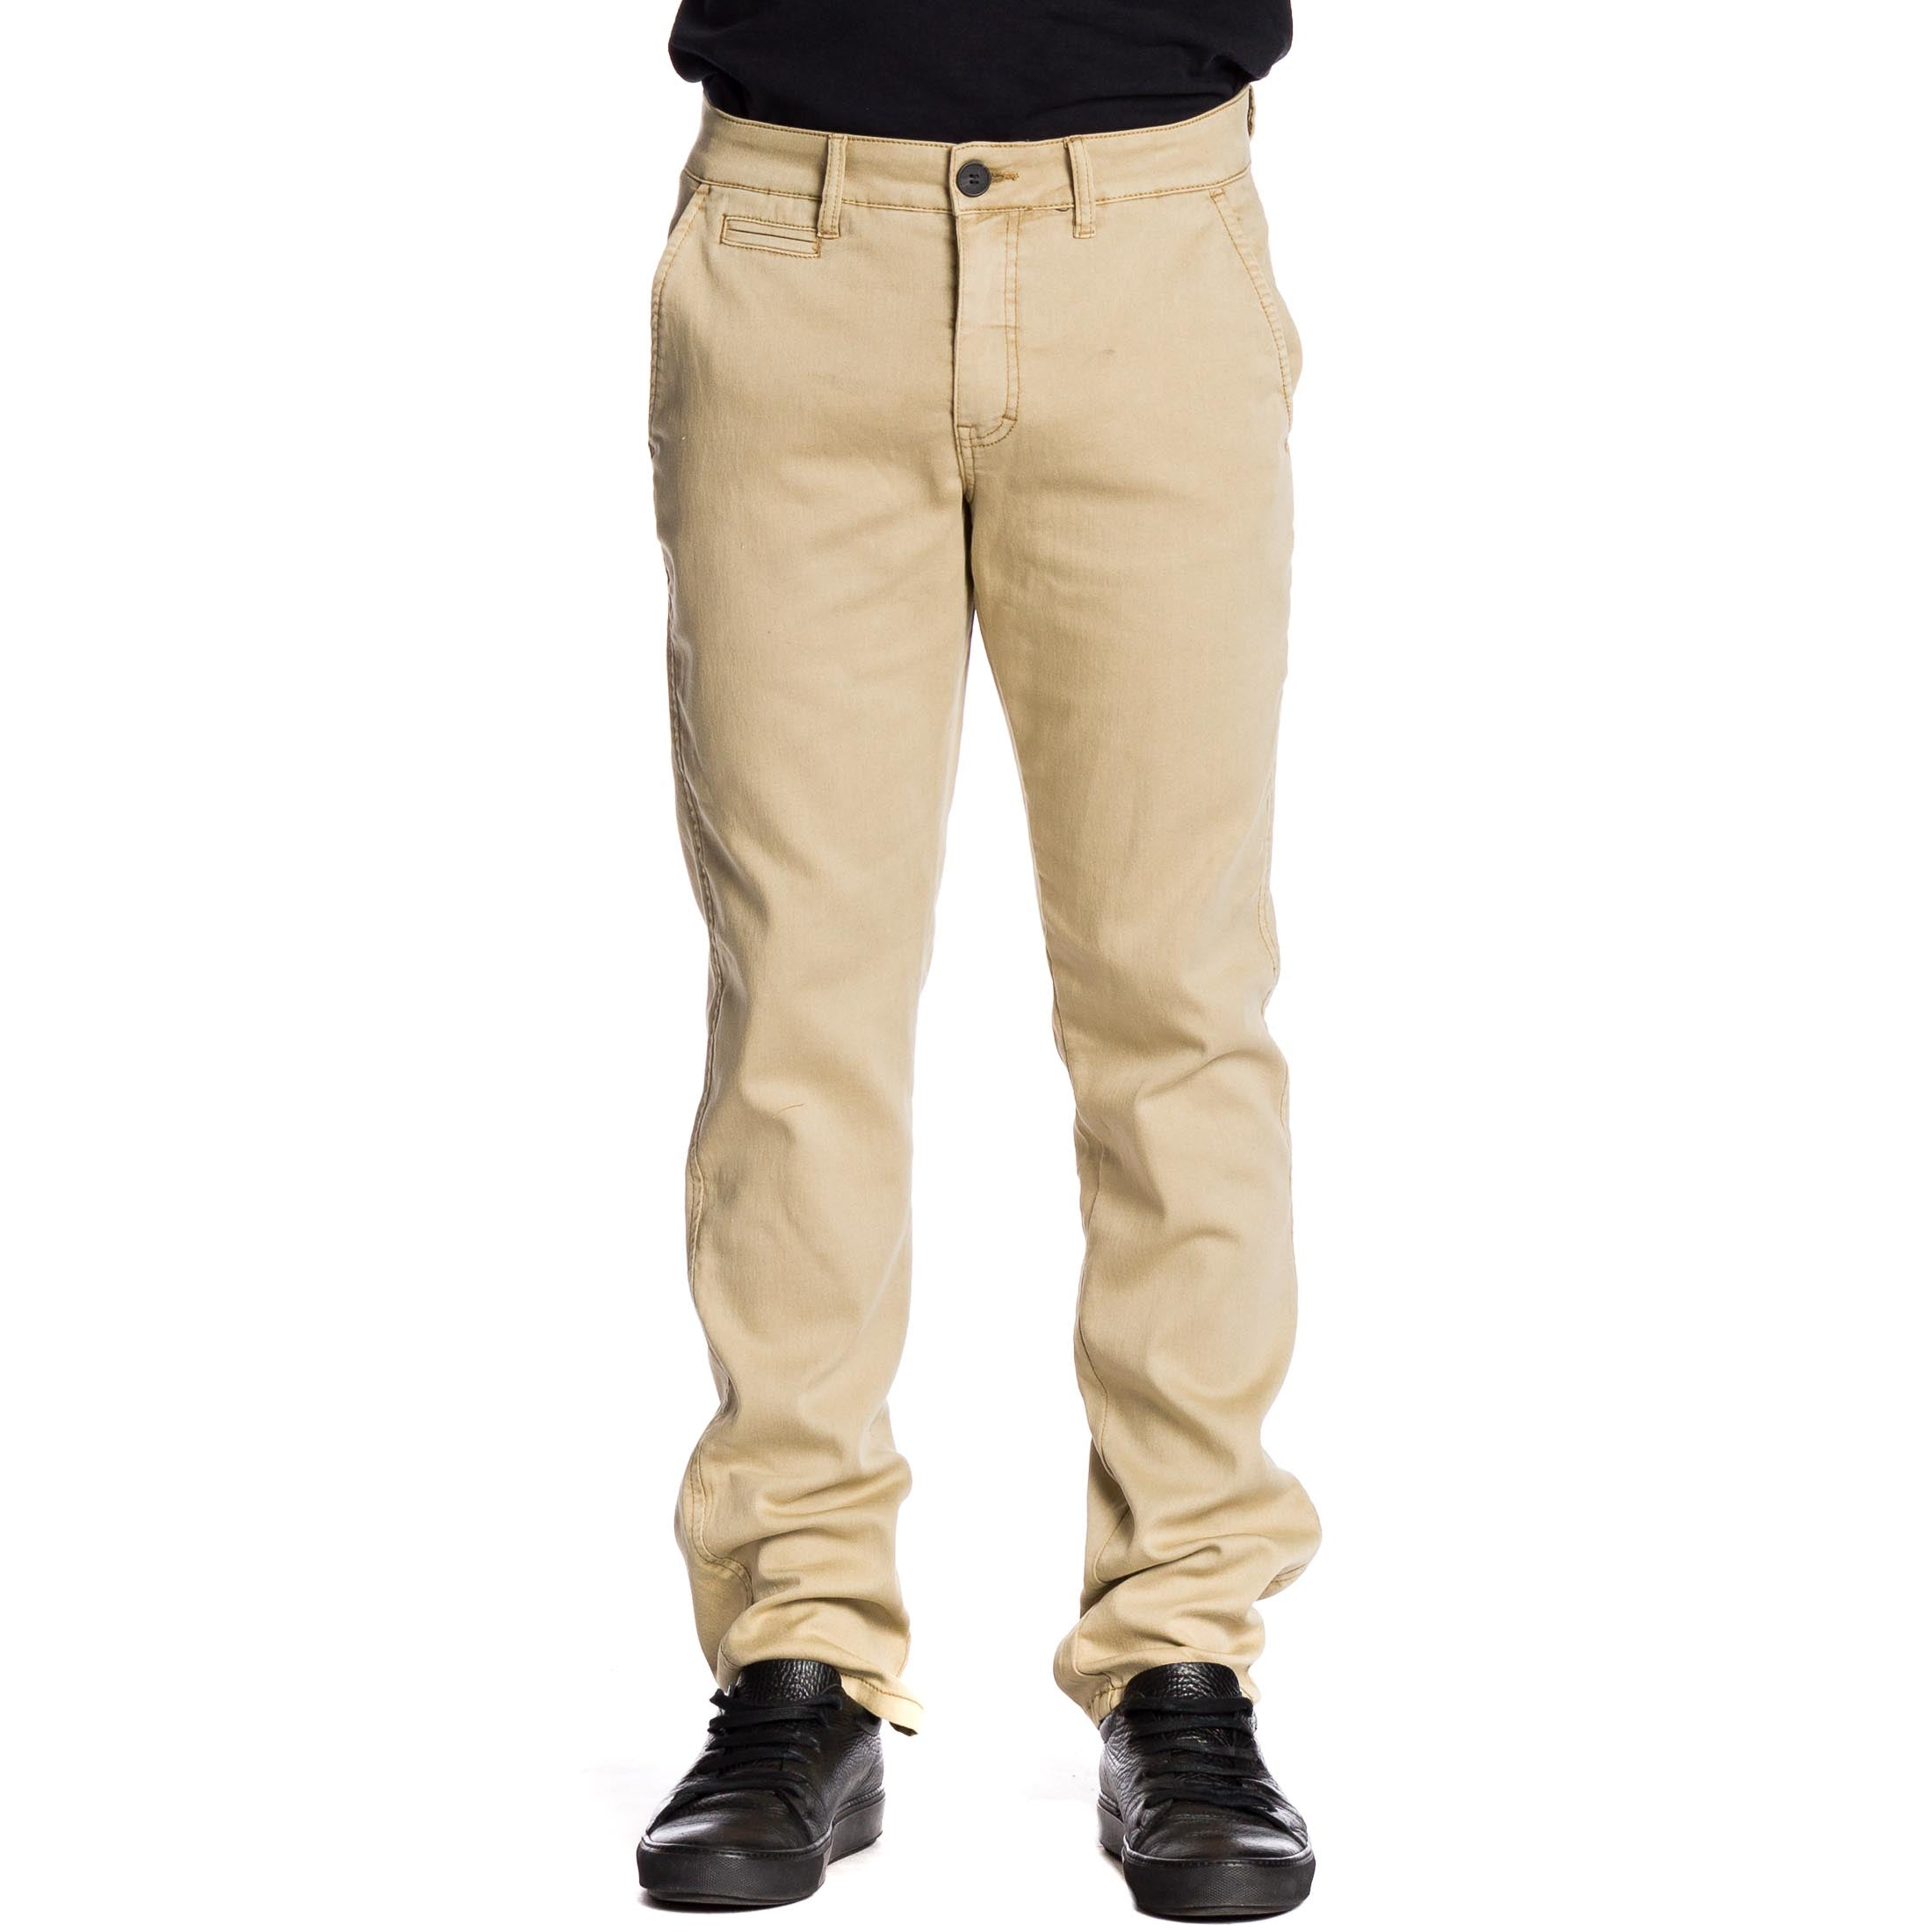 Bounce Pant - Camel - Ezekiel Clothing